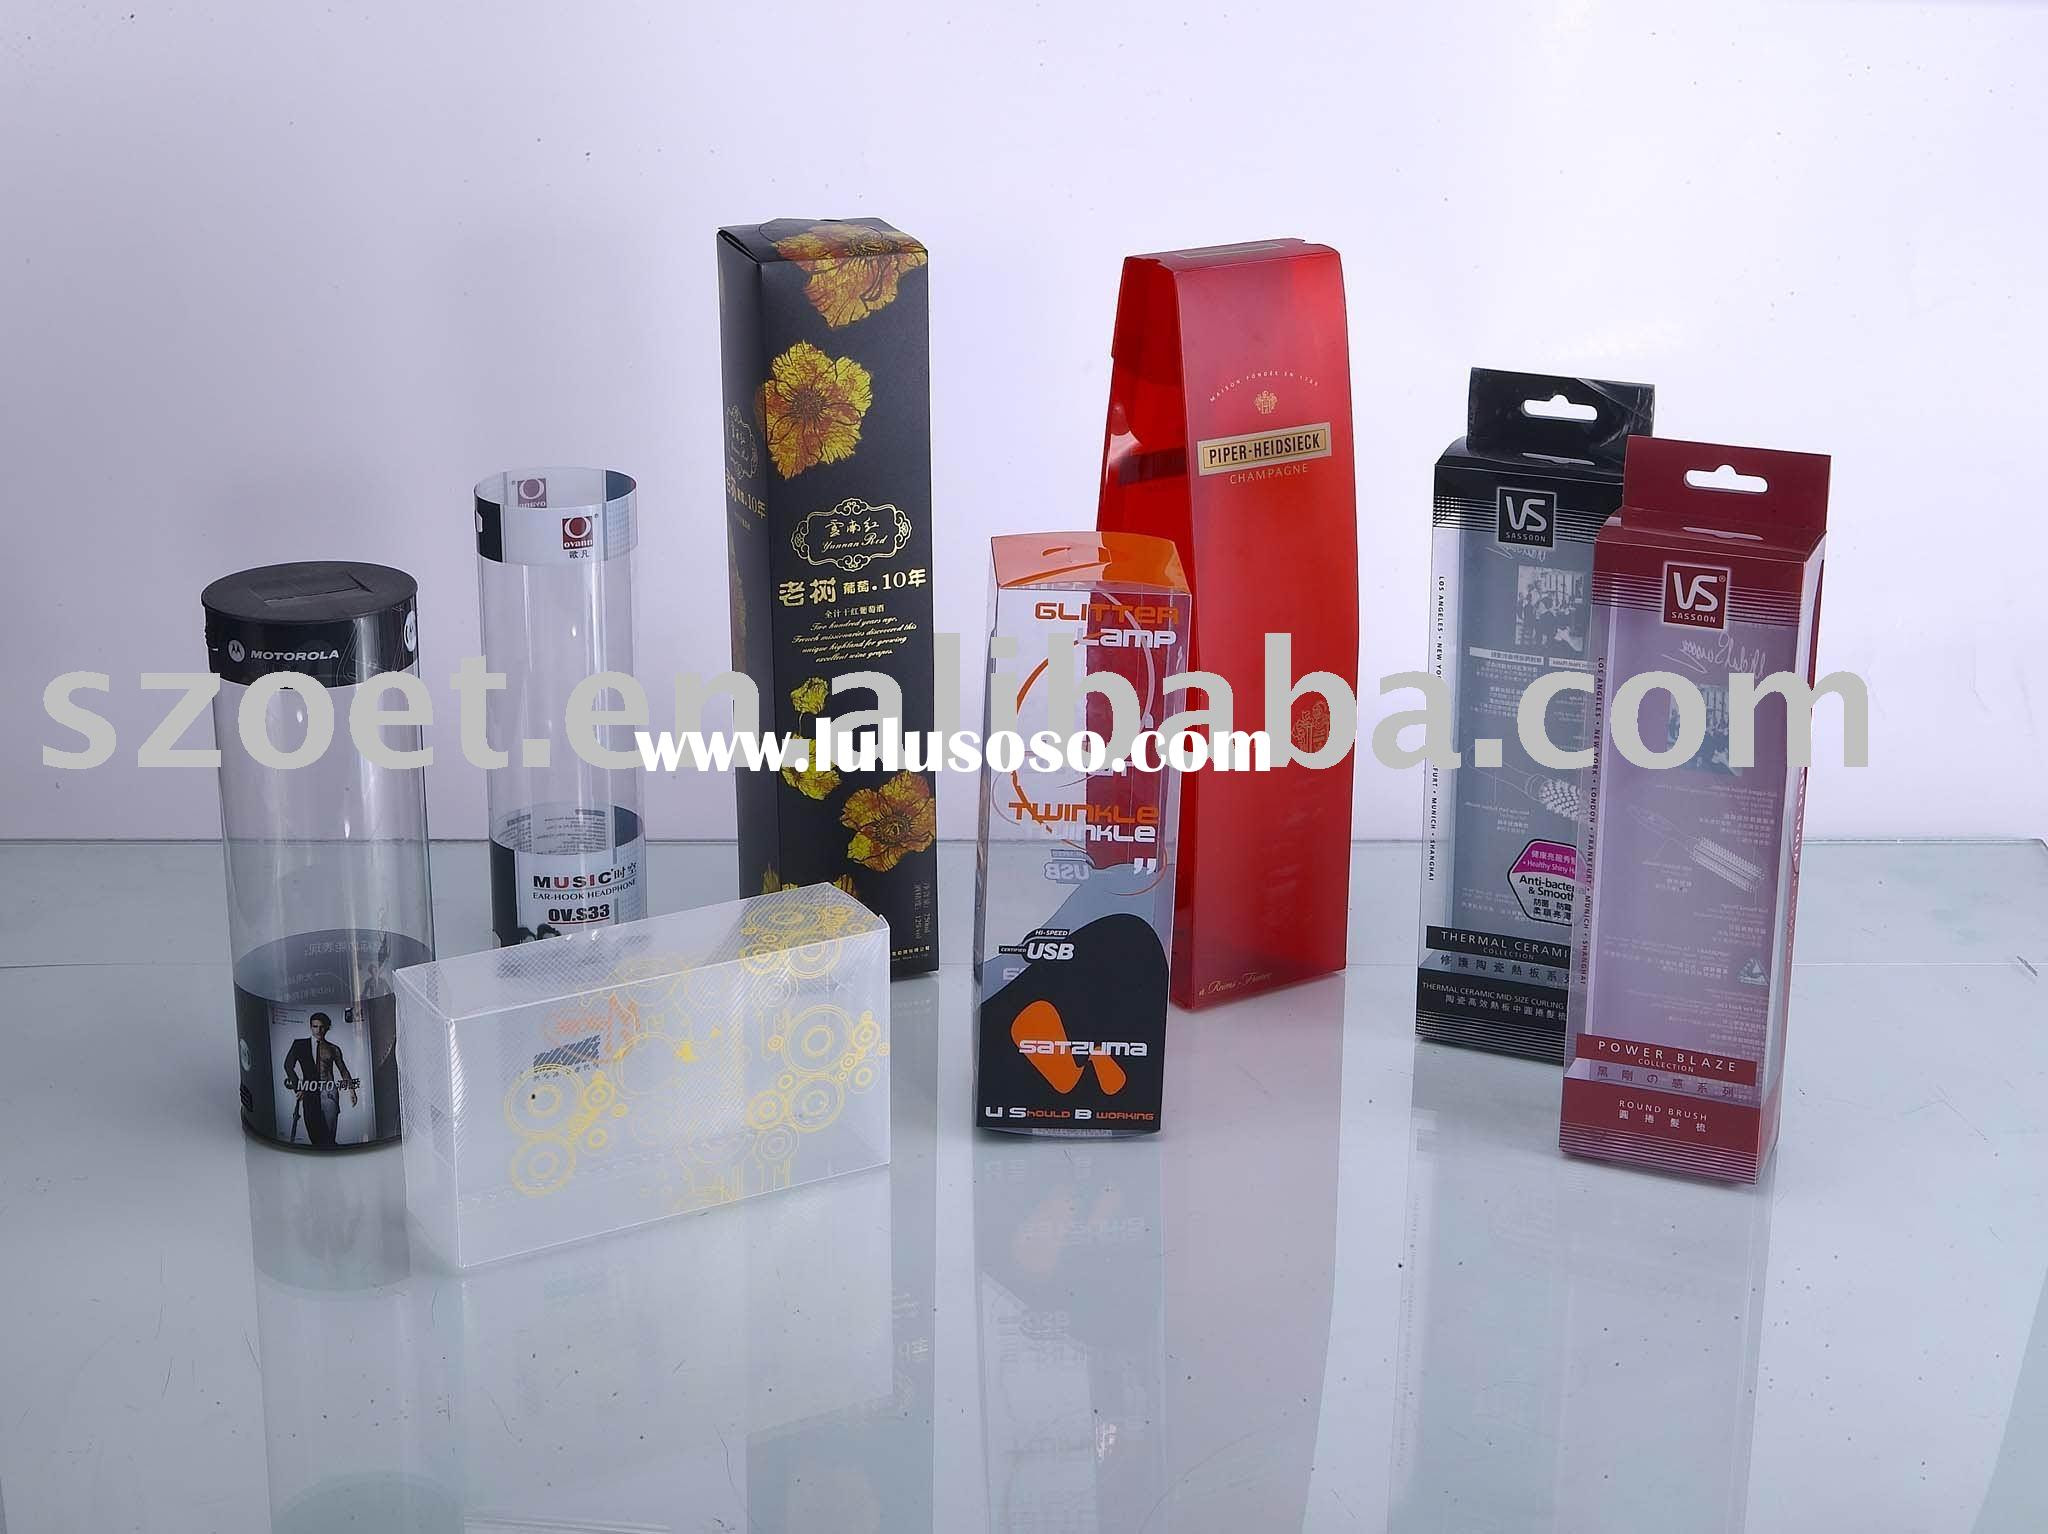 plastic household products malaysia, plastic household products